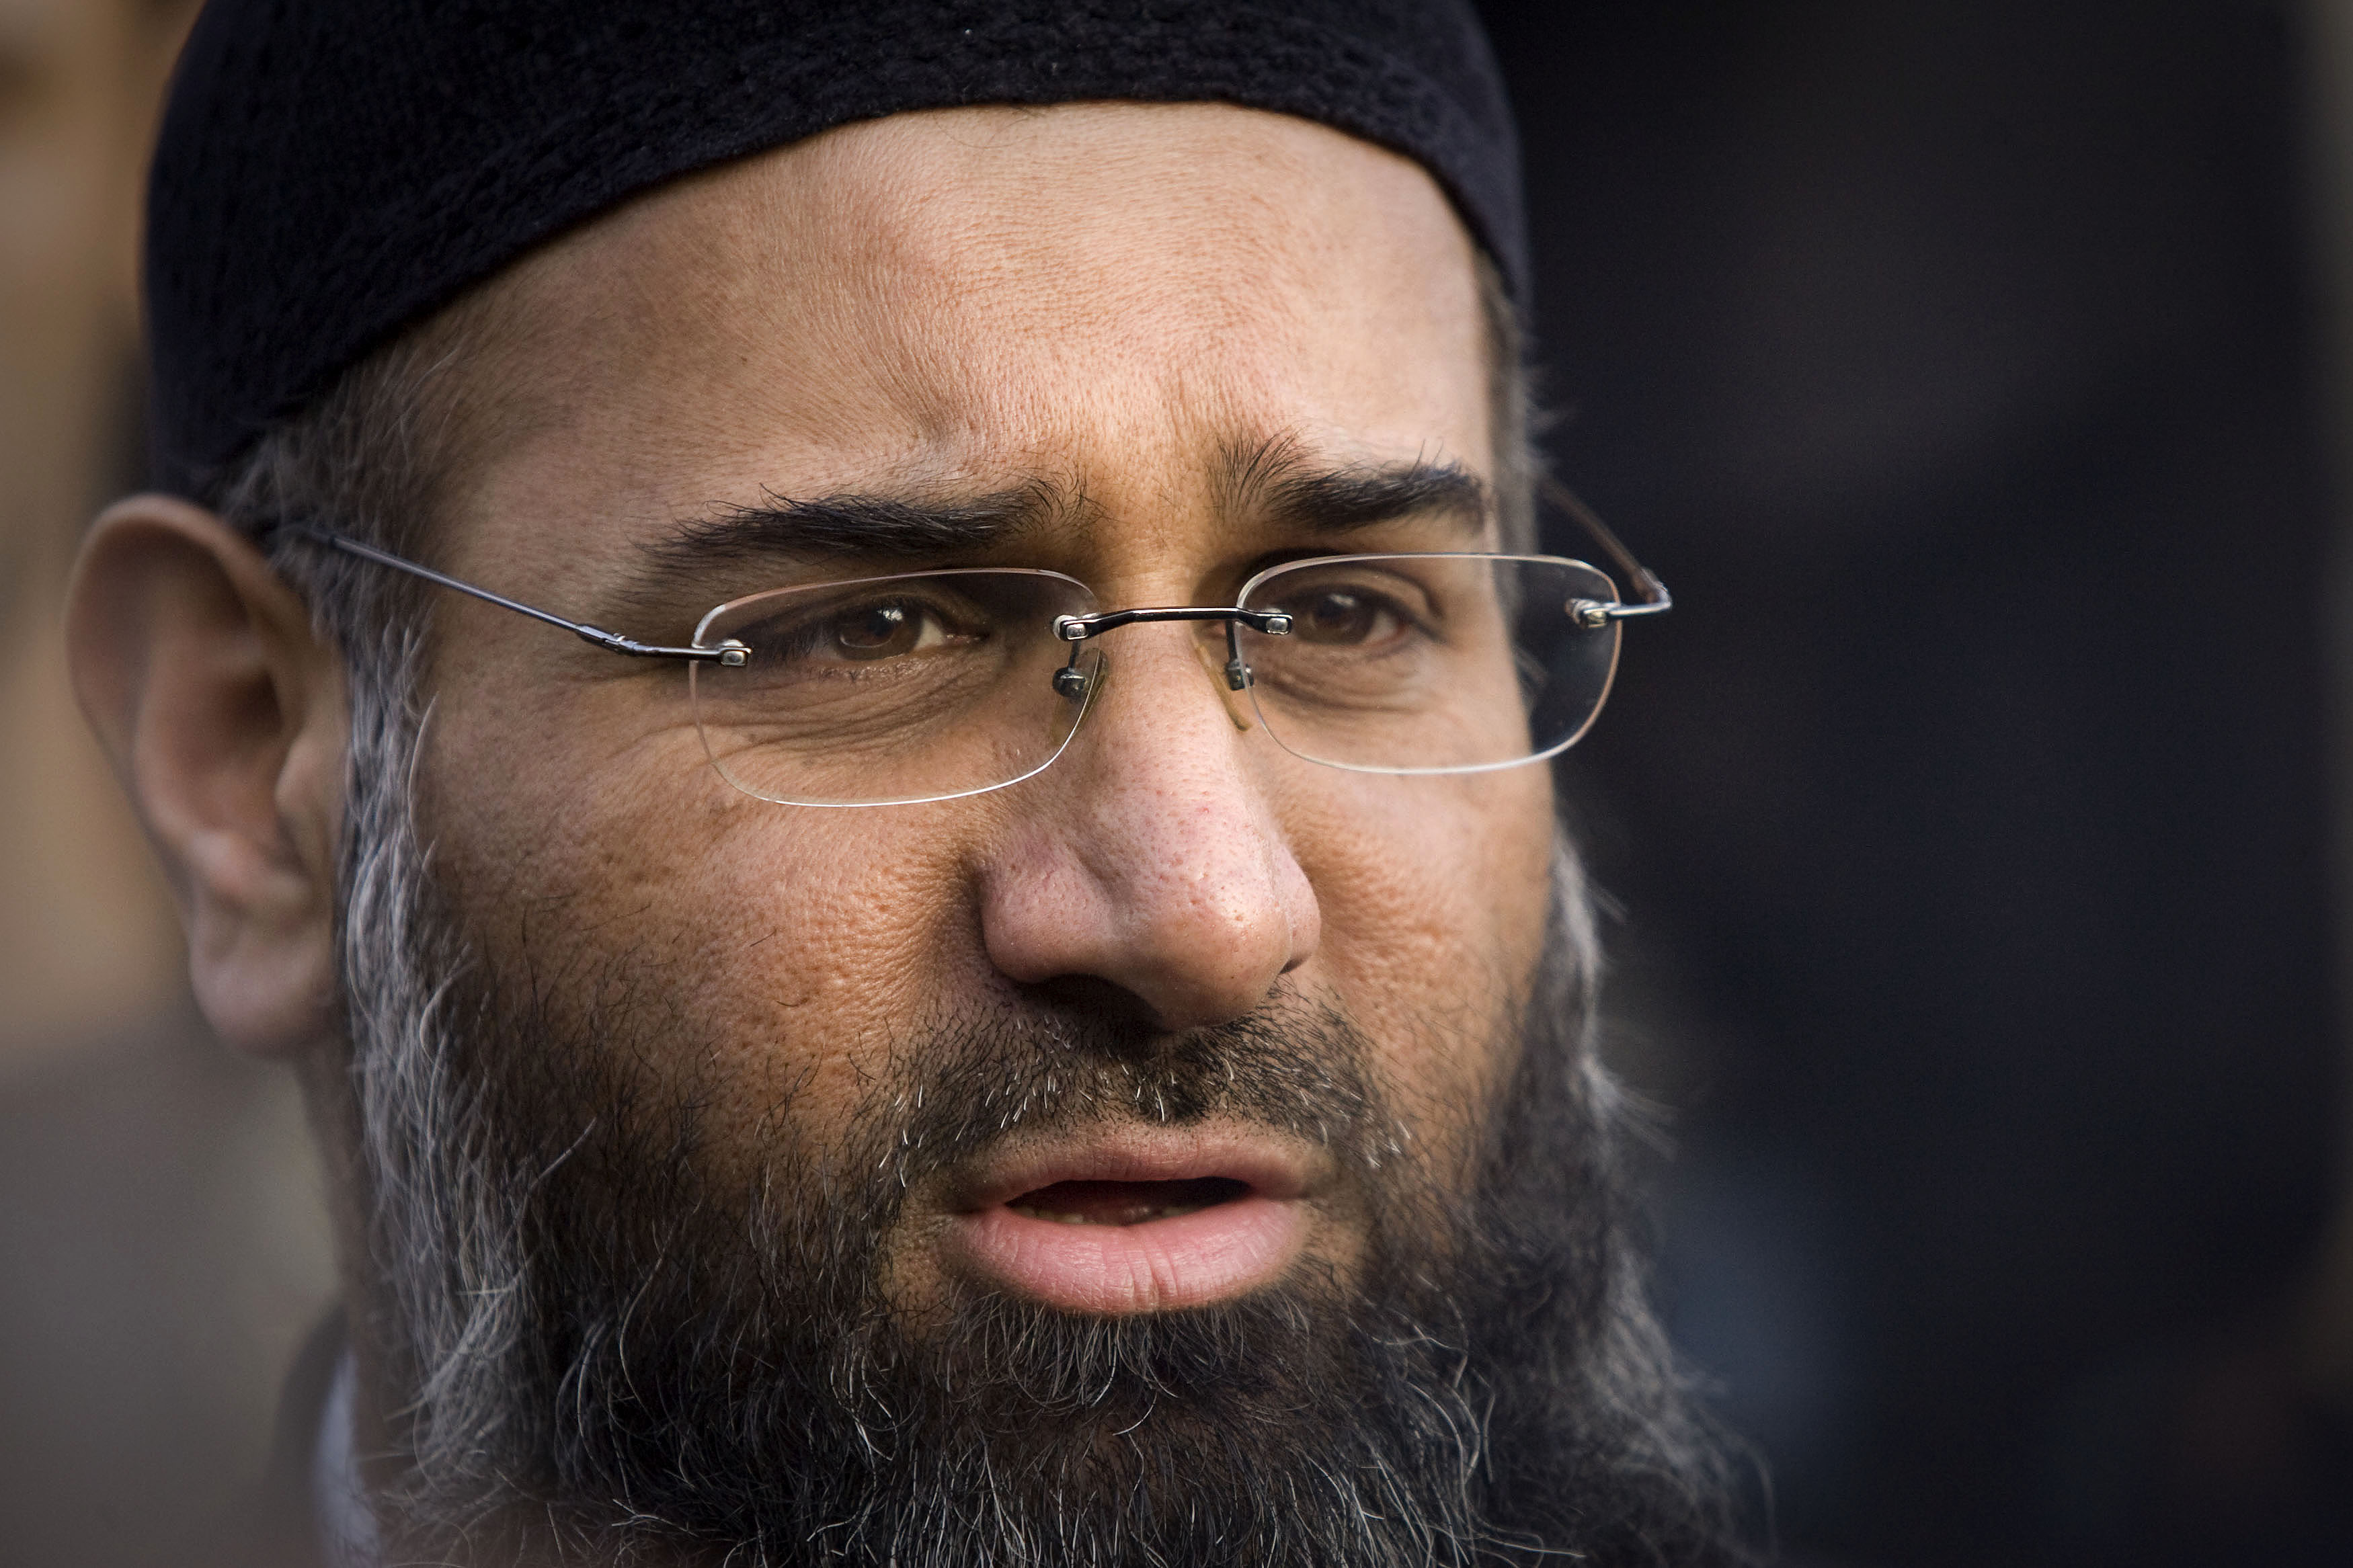 Anjem Choudary Associate, Mohammed Mizanur Rahman, Banned from Involvement in Schools